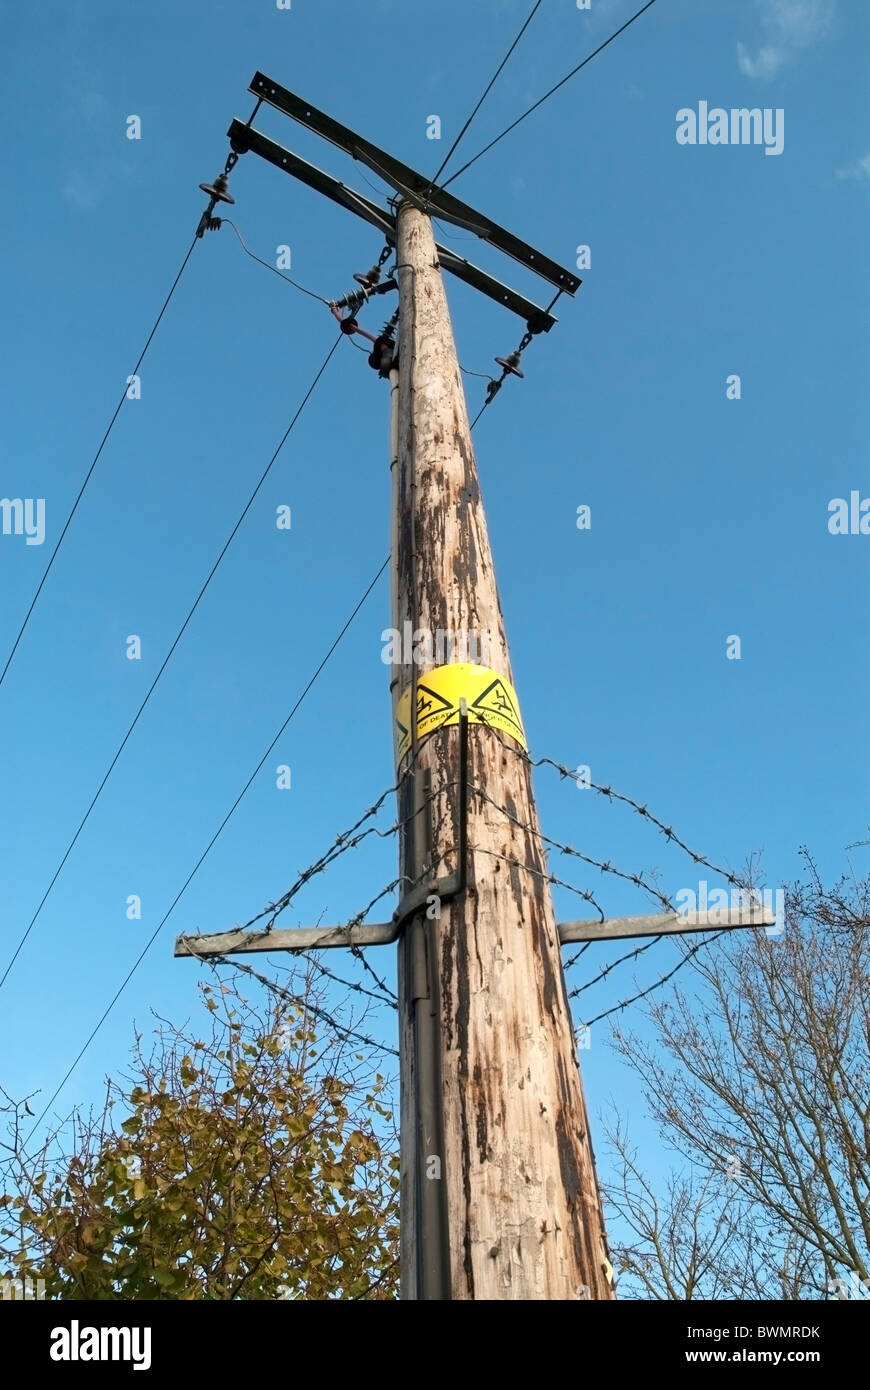 Wooden Post Electricity Pylons with Power Lines and Barbed Wire ...